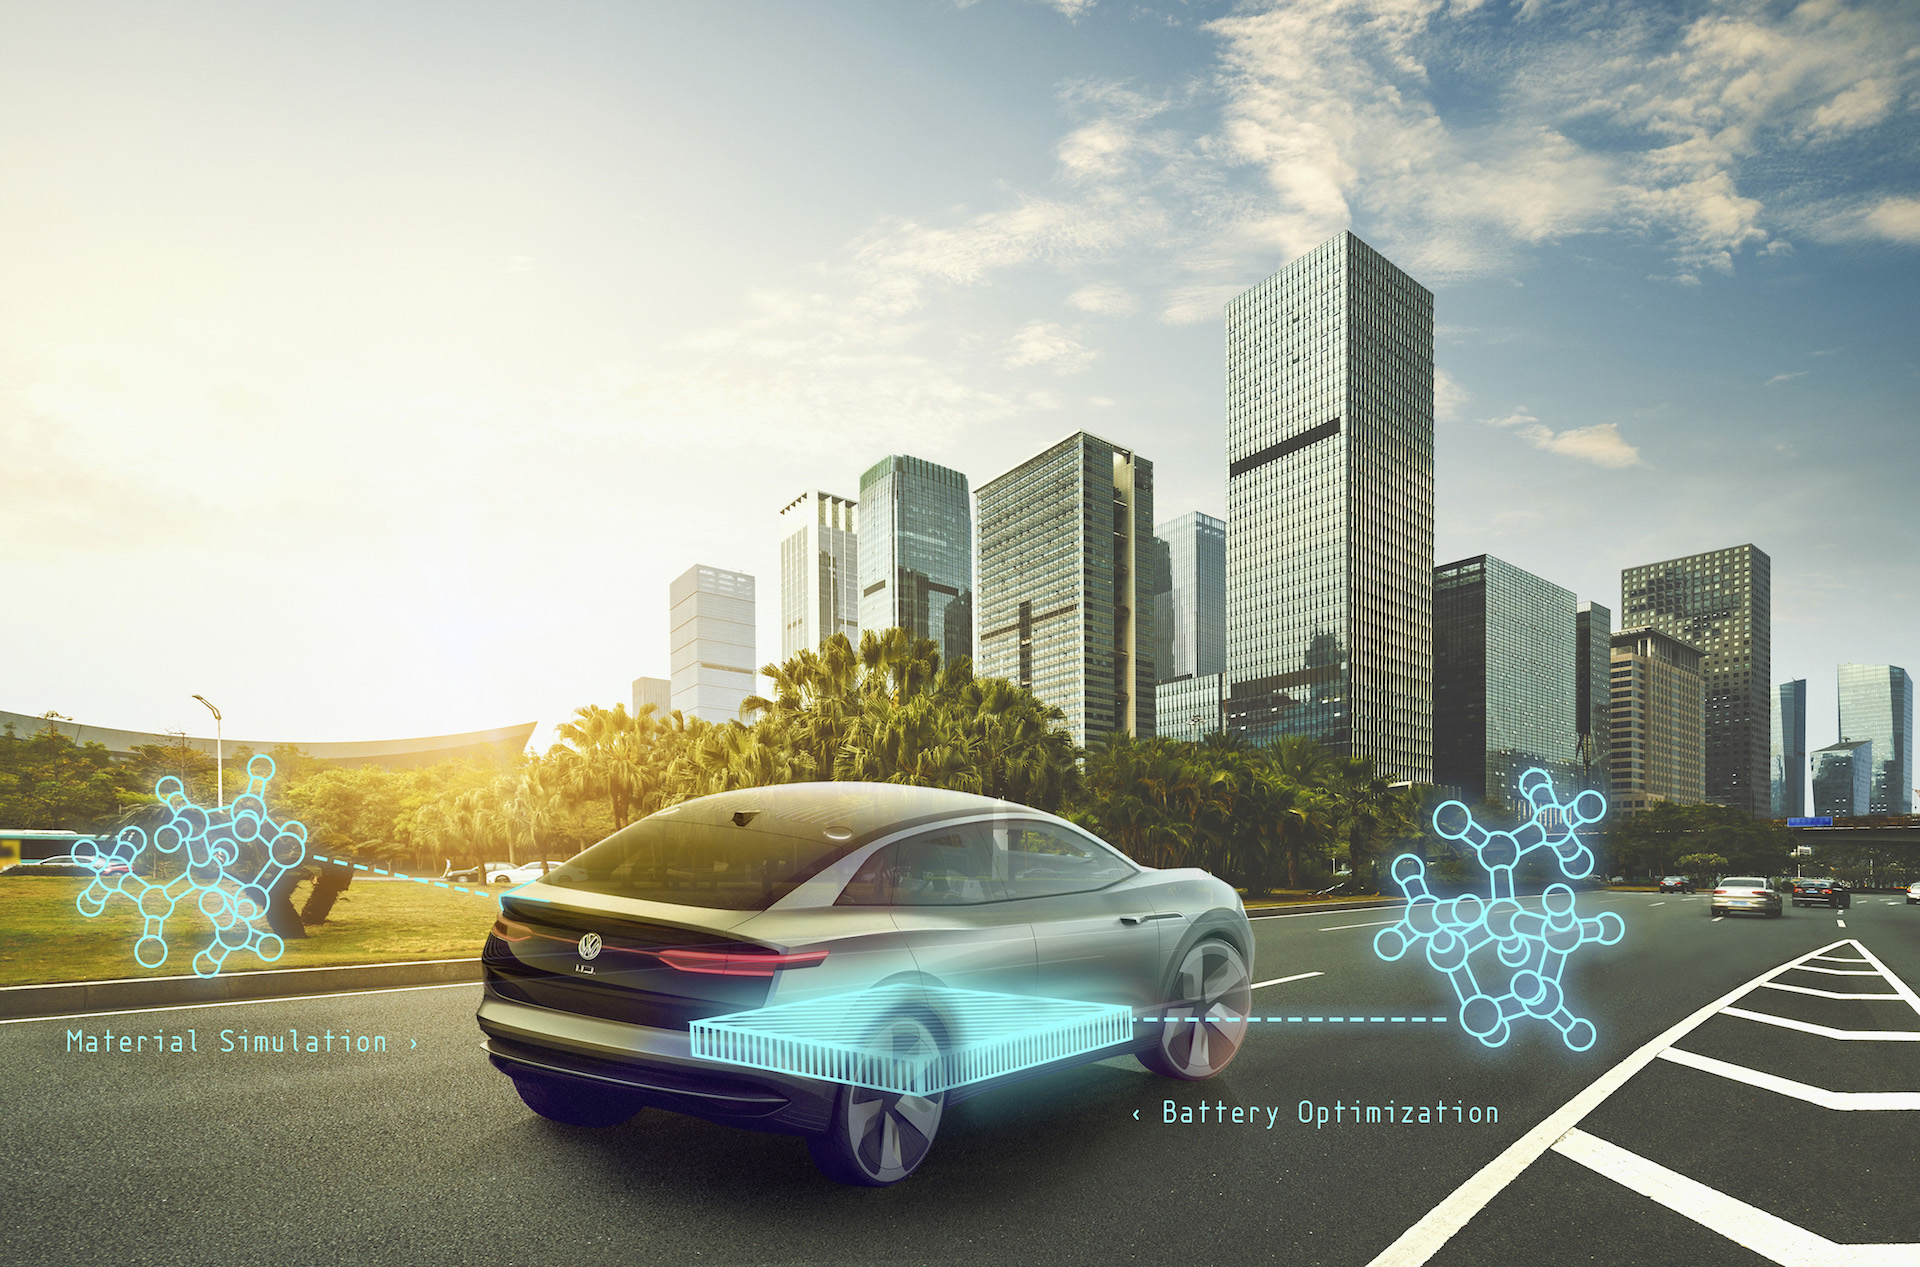 Google and VW will use quantum computers to develop battery, self